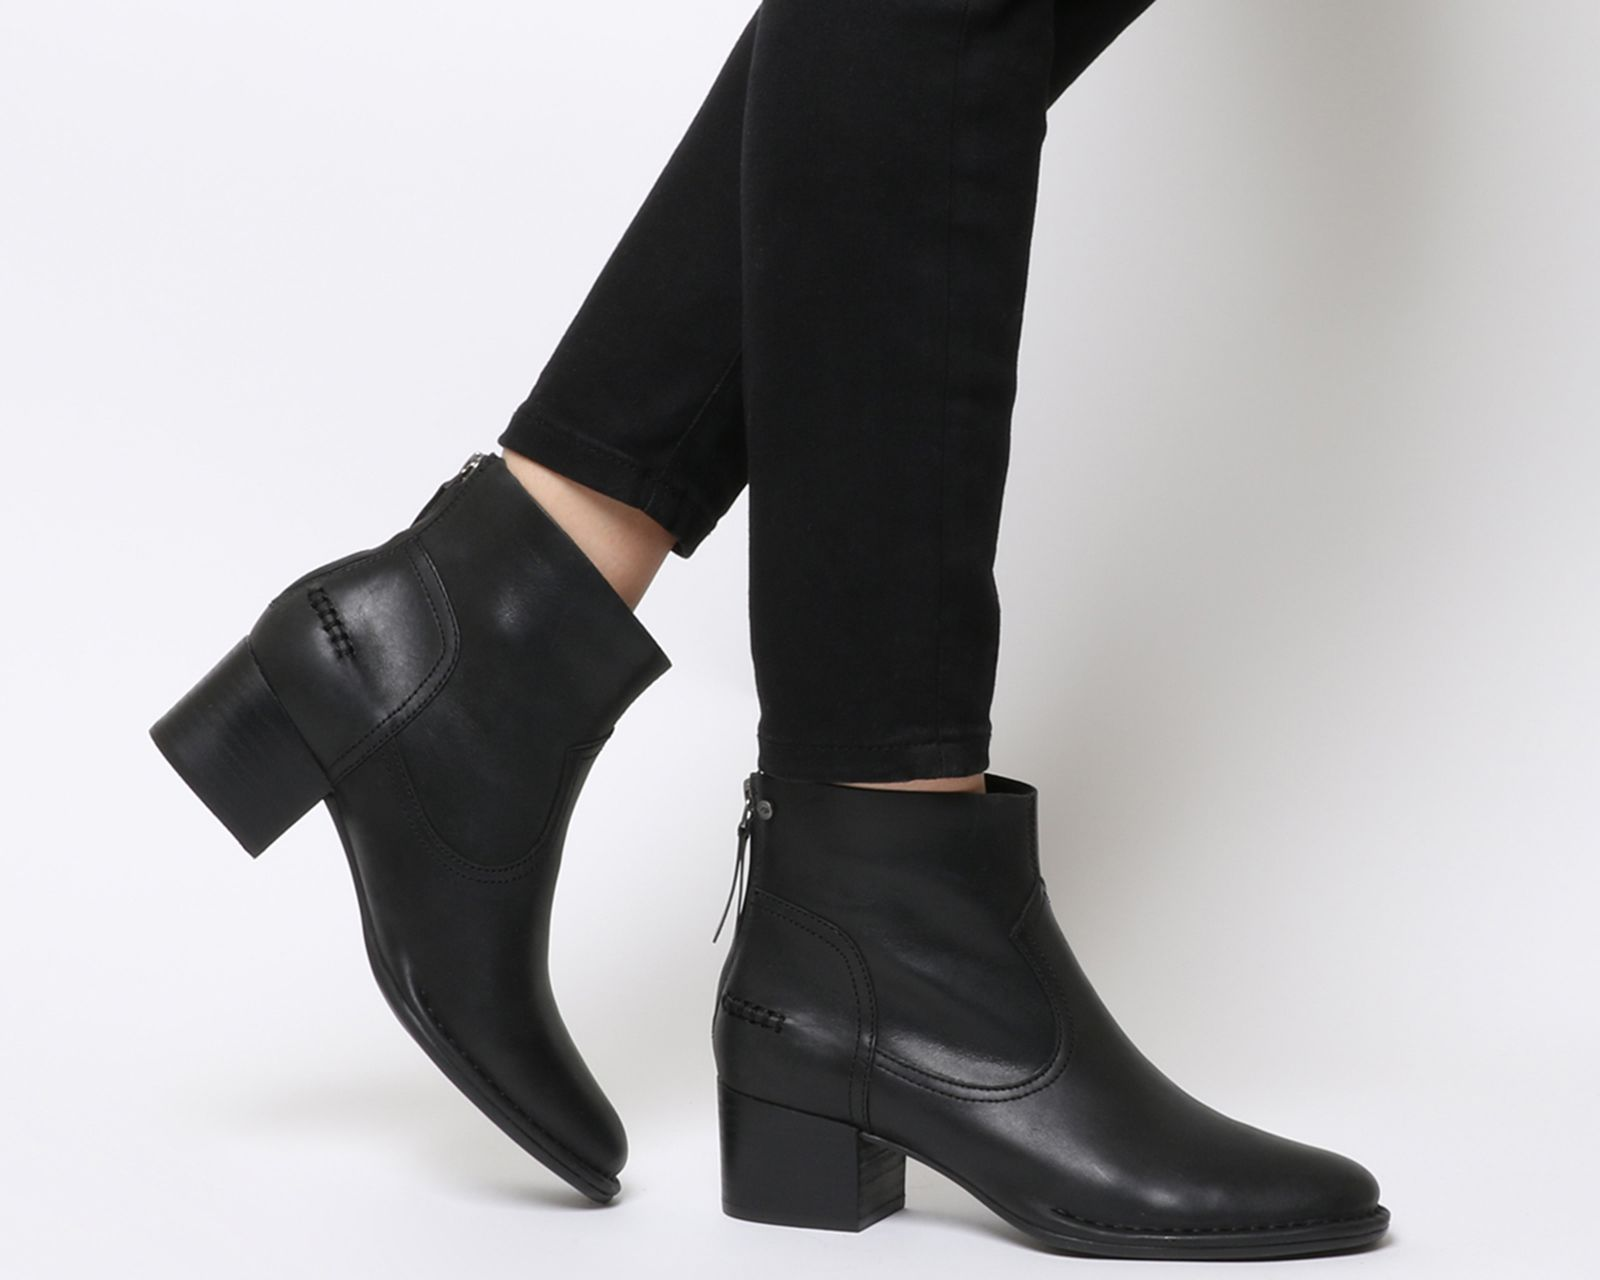 e33797b7297 Bandara Ankle Boots | Clothes | Black leather ankle boots, Boots ...